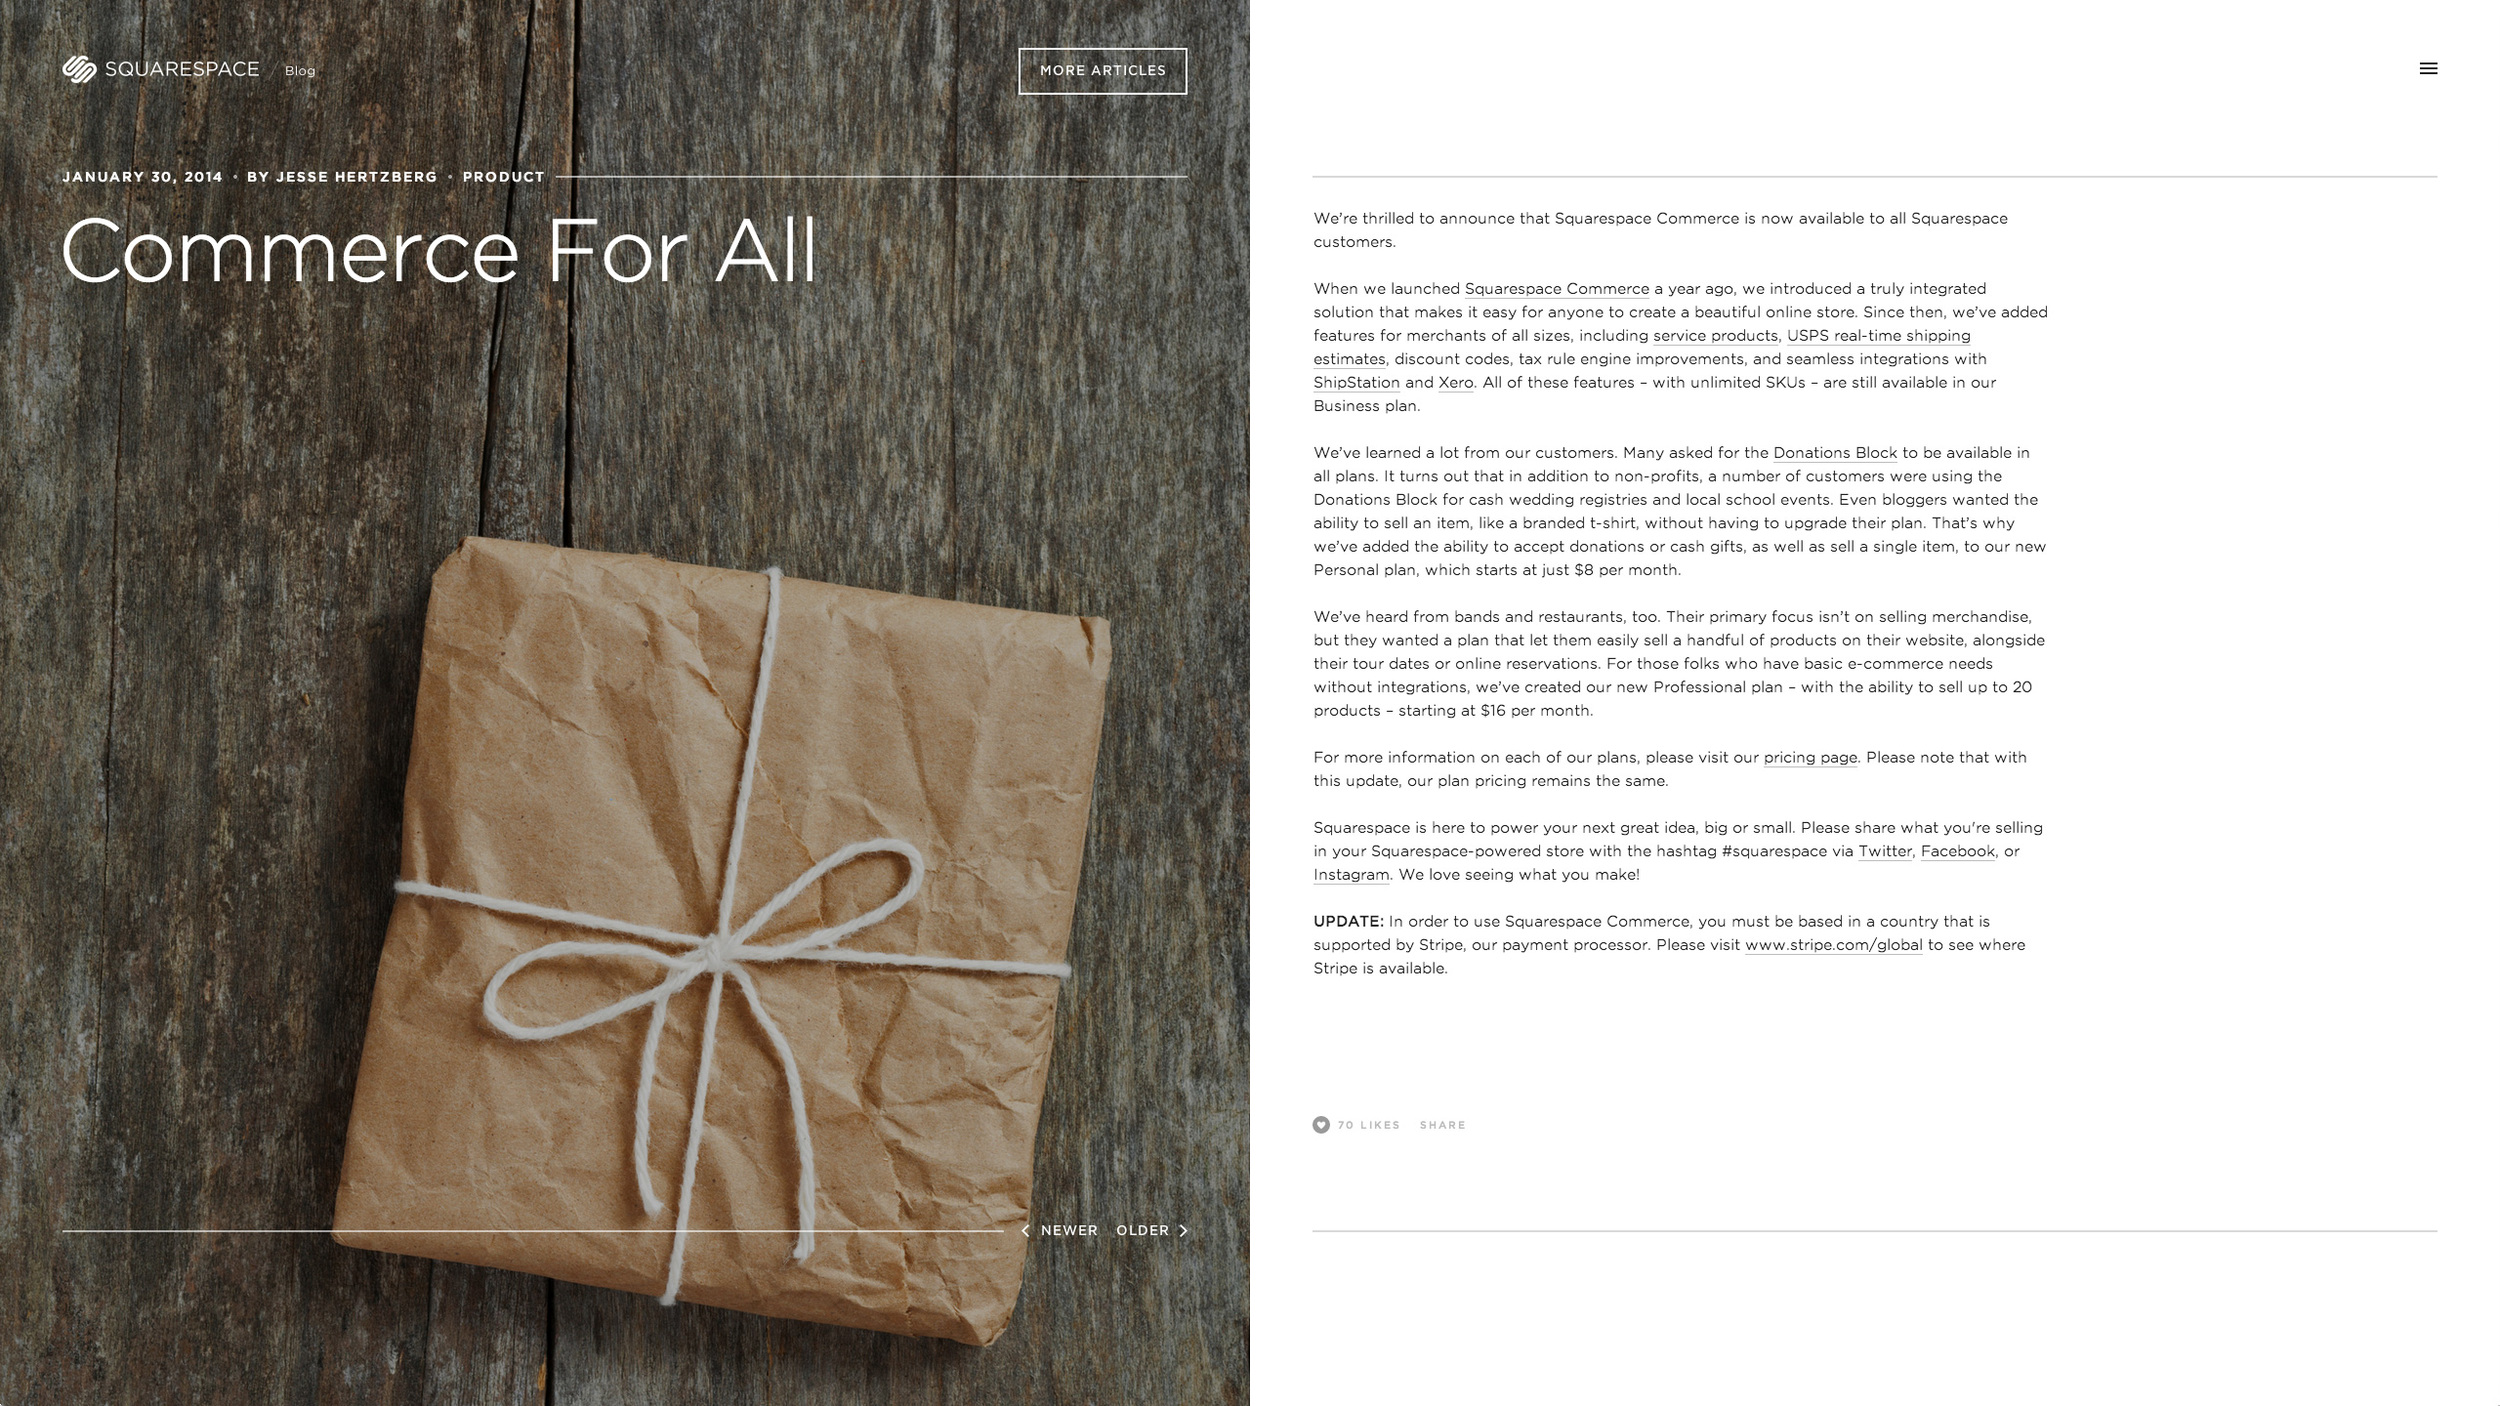 Inspired by book layouts, a bold image, headline and meta information appears on the left, with the content scrolling on the right.